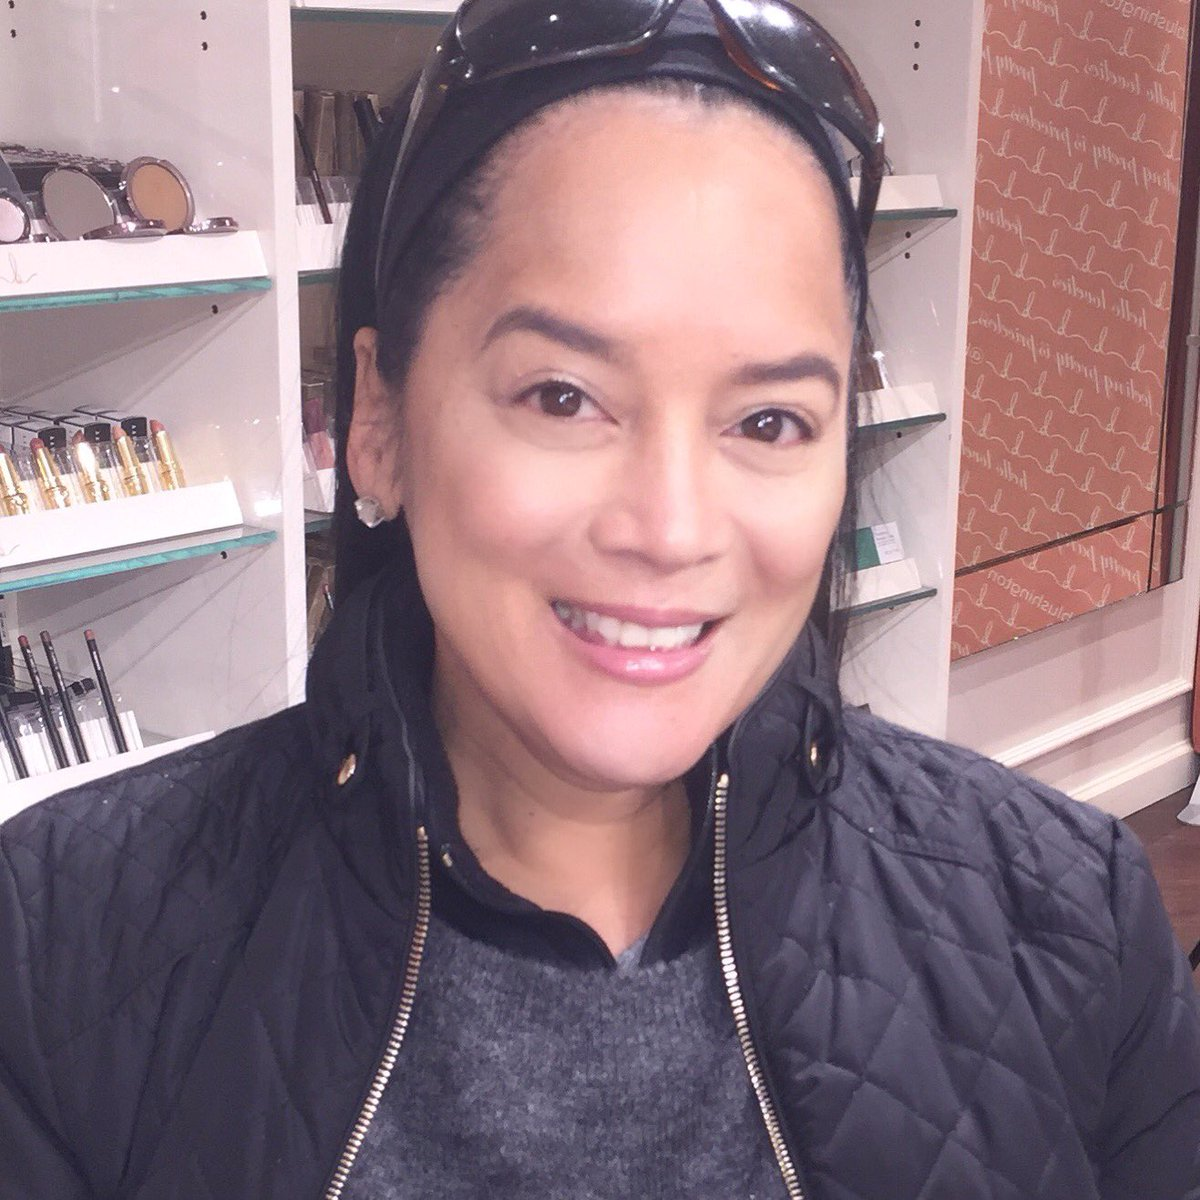 Listen with your gut, not your head.  Sanford Meisner #actress #actress #actorslife #acting #classes today #studentlife #student #makeup by #blushington #Alanis #nofilter<br>http://pic.twitter.com/AWnim73C5M